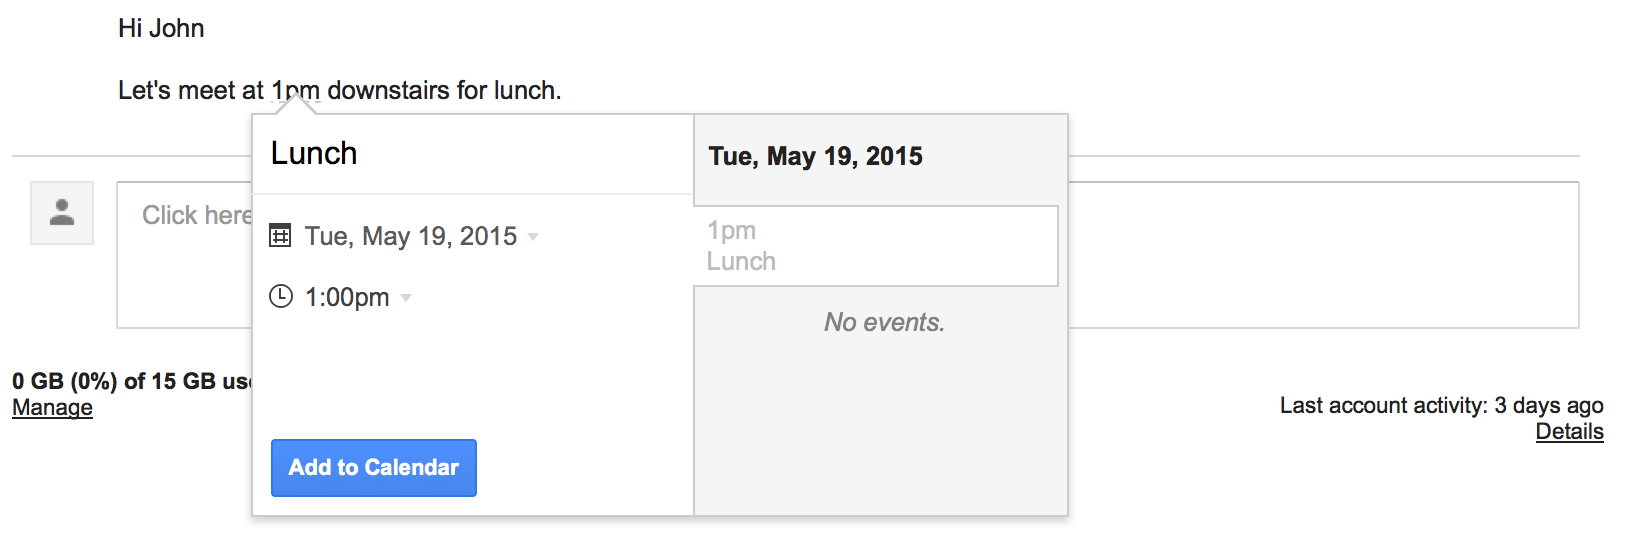 Create Google Calendar events from emails